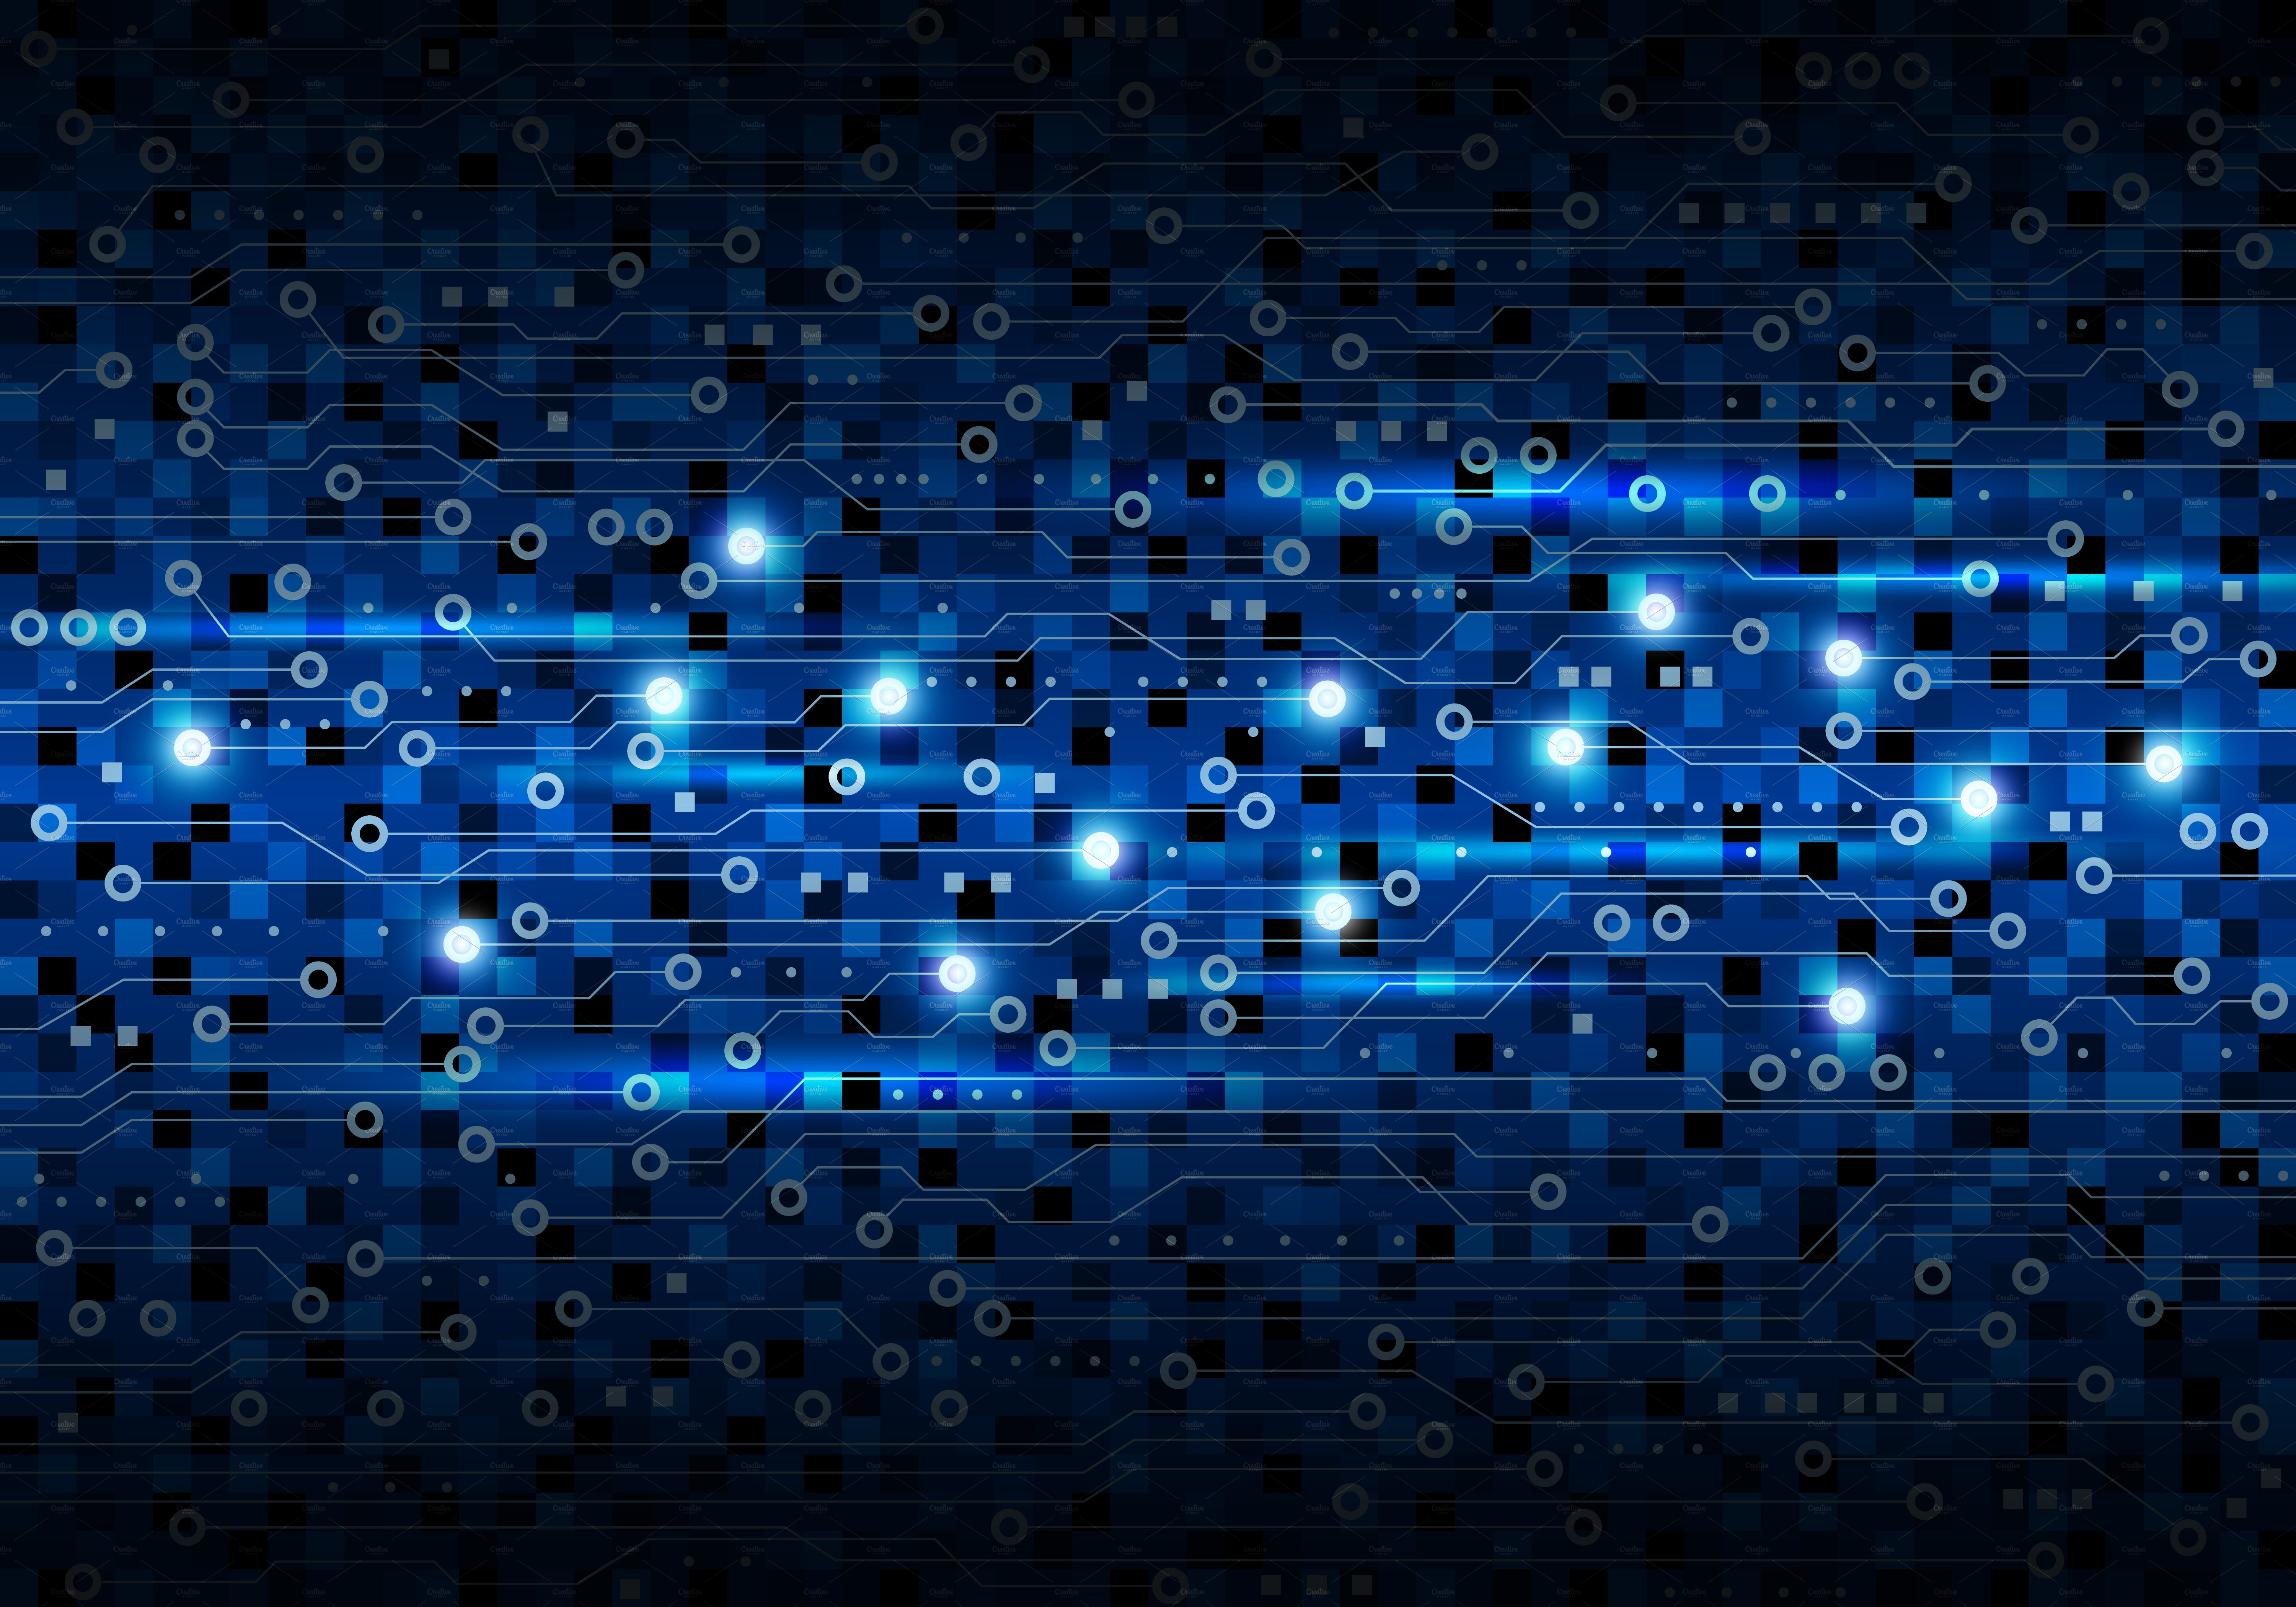 Vector Blue Circuit Board Illustrations Creative Market Photo Of Abstract Background With High Tech